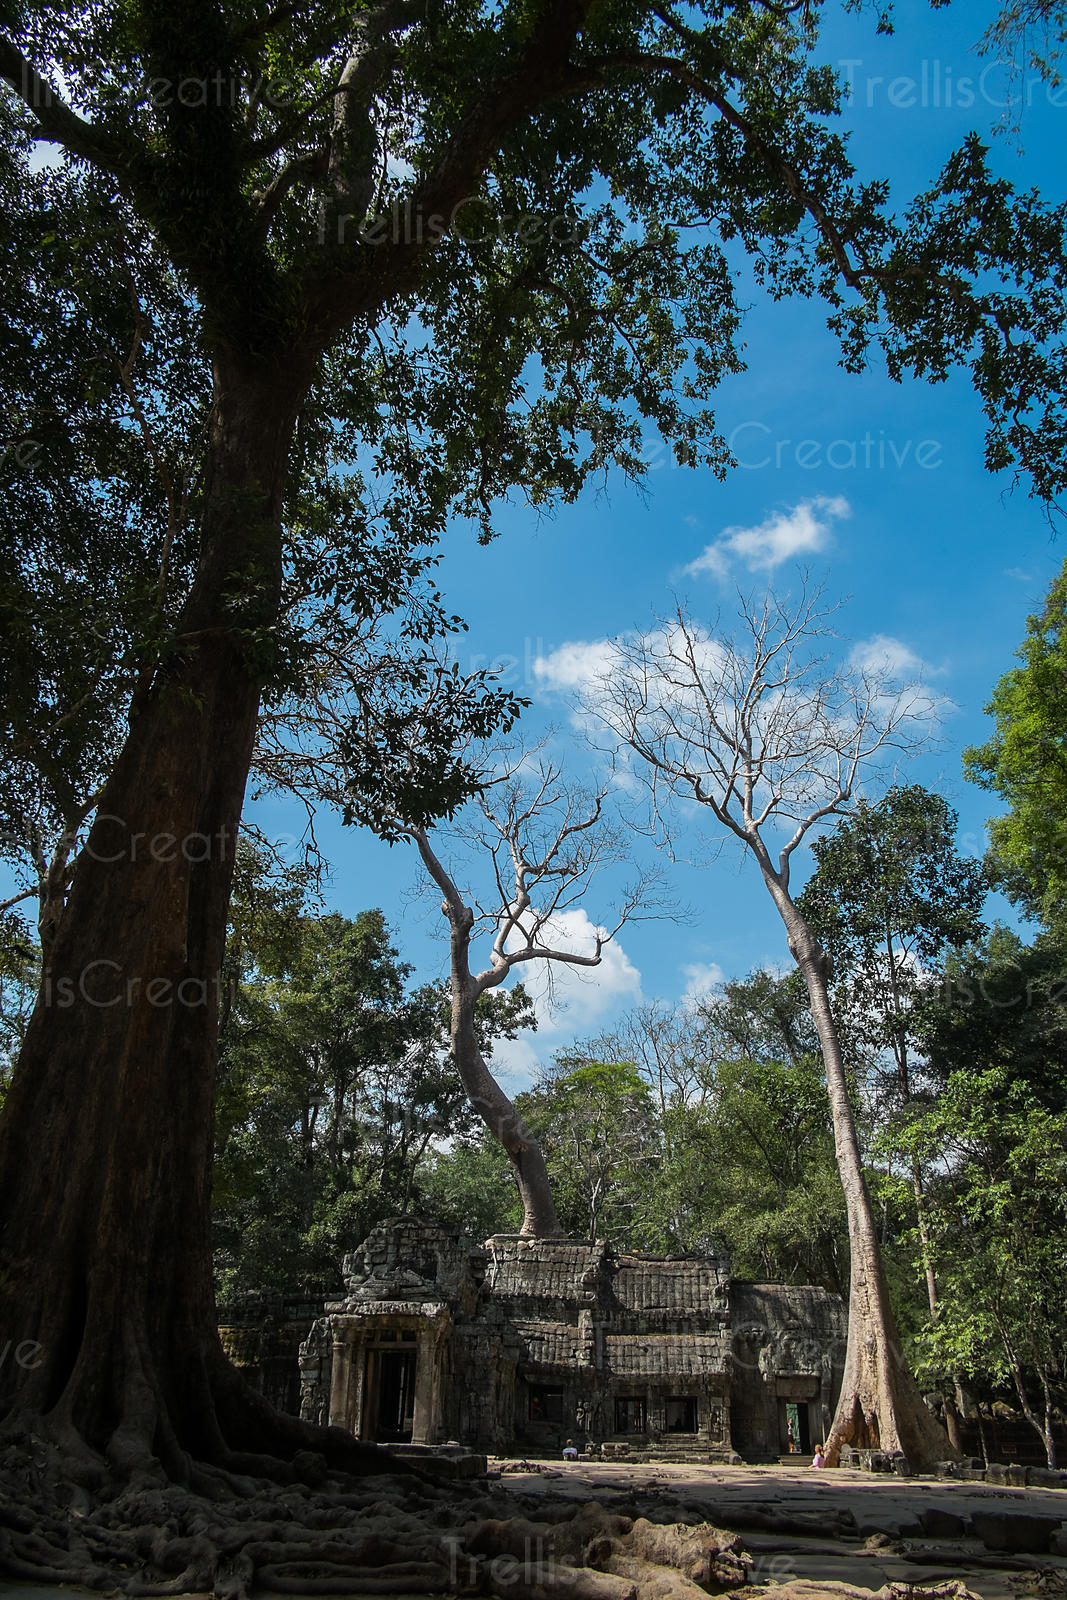 Trees growing around the old ruins of a Temple